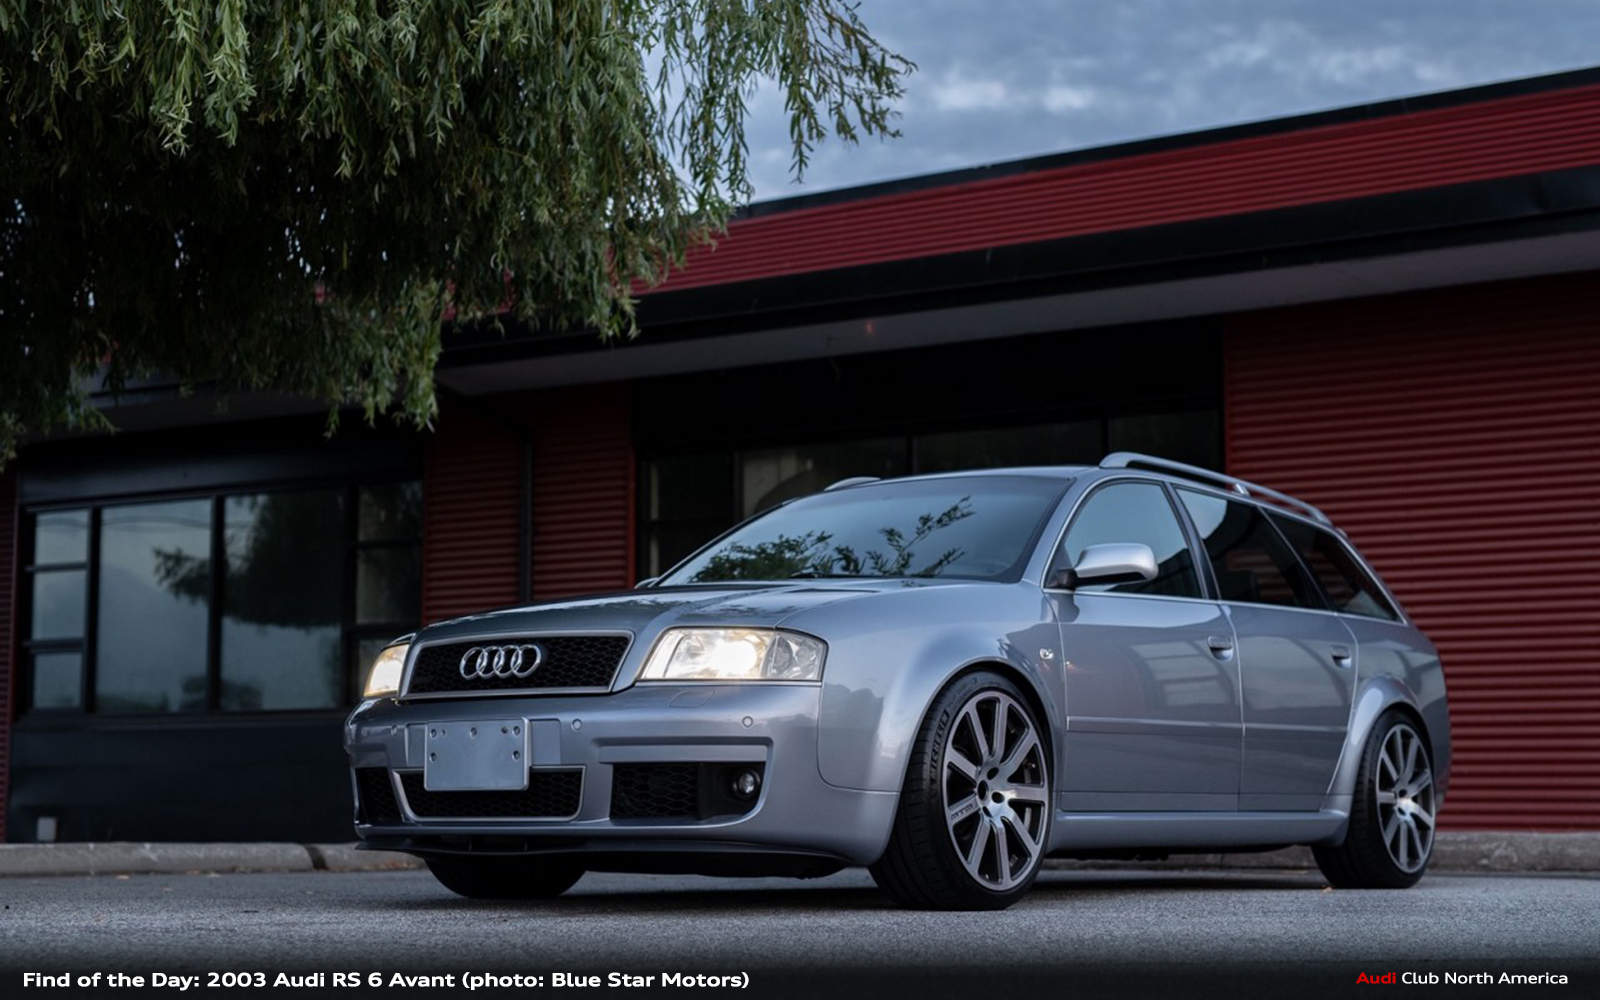 Find of the Day: 2003 Audi RS 6 Avant